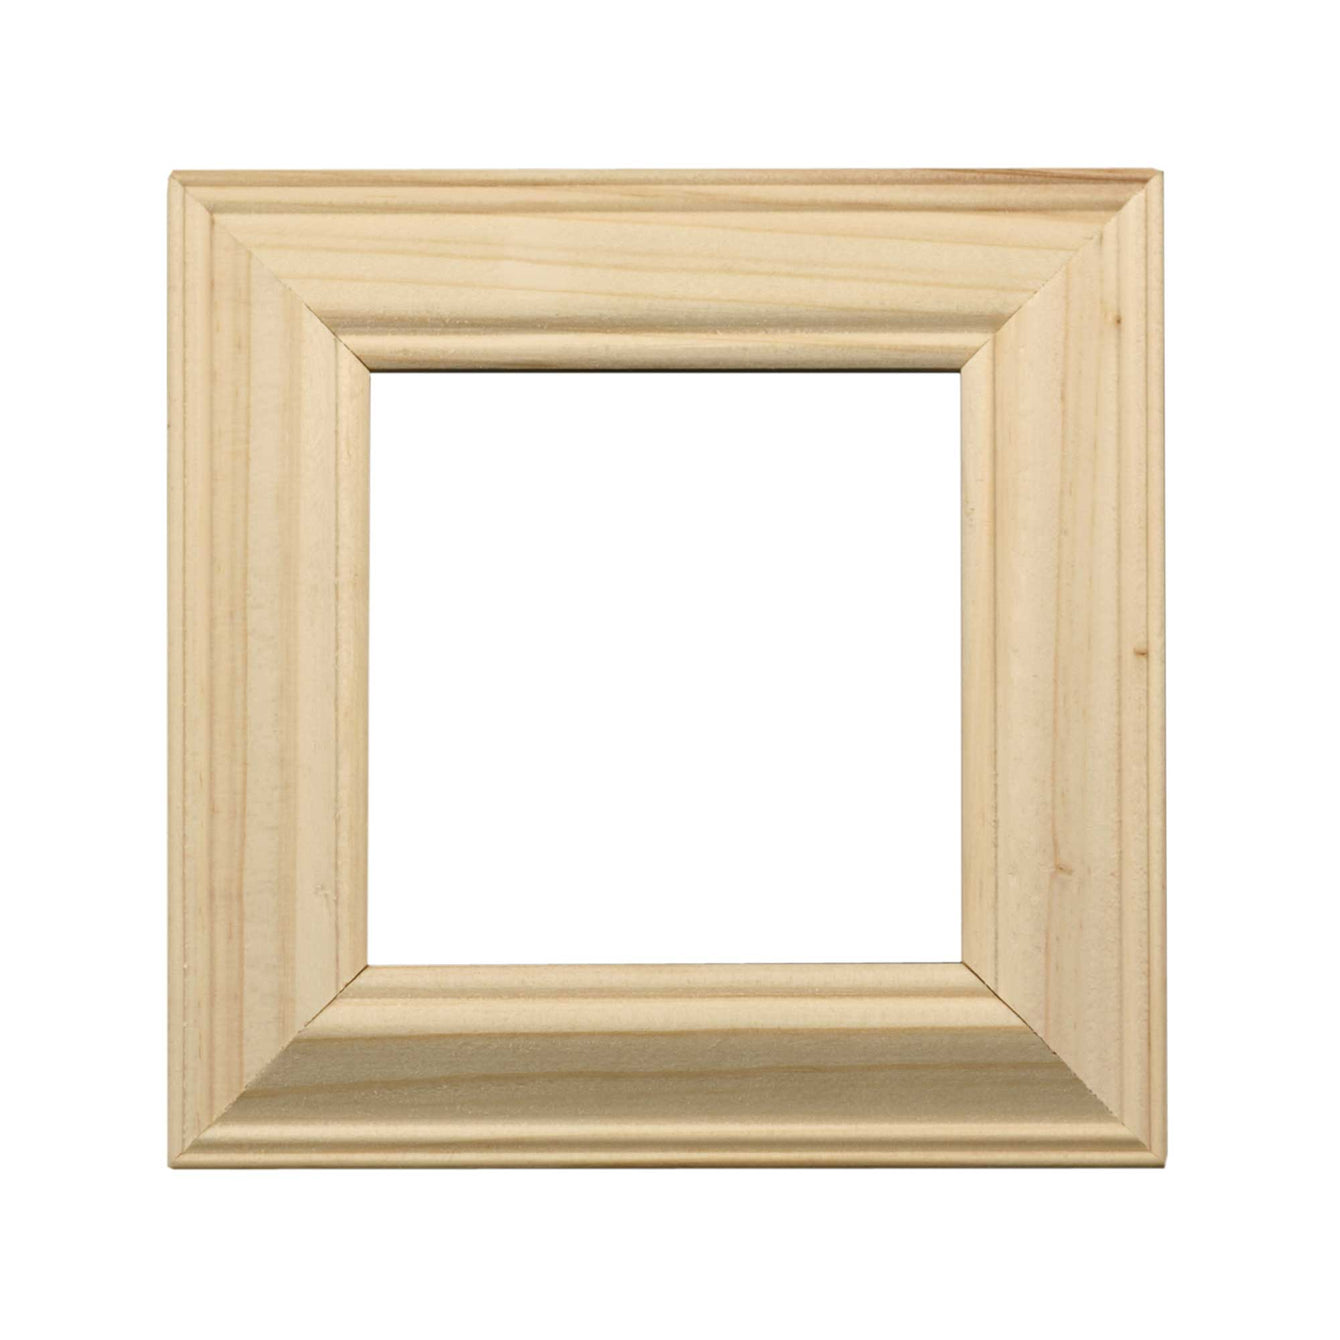 ElekTek Switch Surround Ovolo Frame Cover Finger Plate Pine Shades - Buy It Better Old Varnished Pine